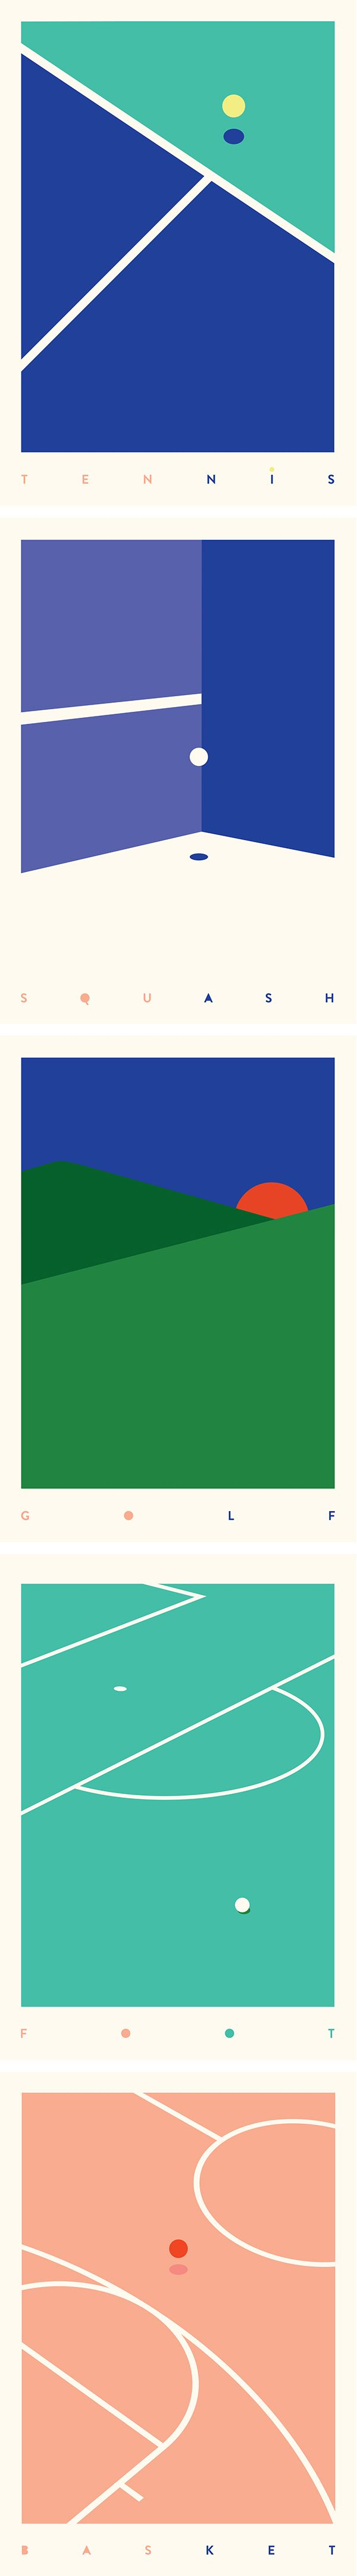 these minimalist posters convey a sense of order and direction and also not too obtrusive so being quite reserved.